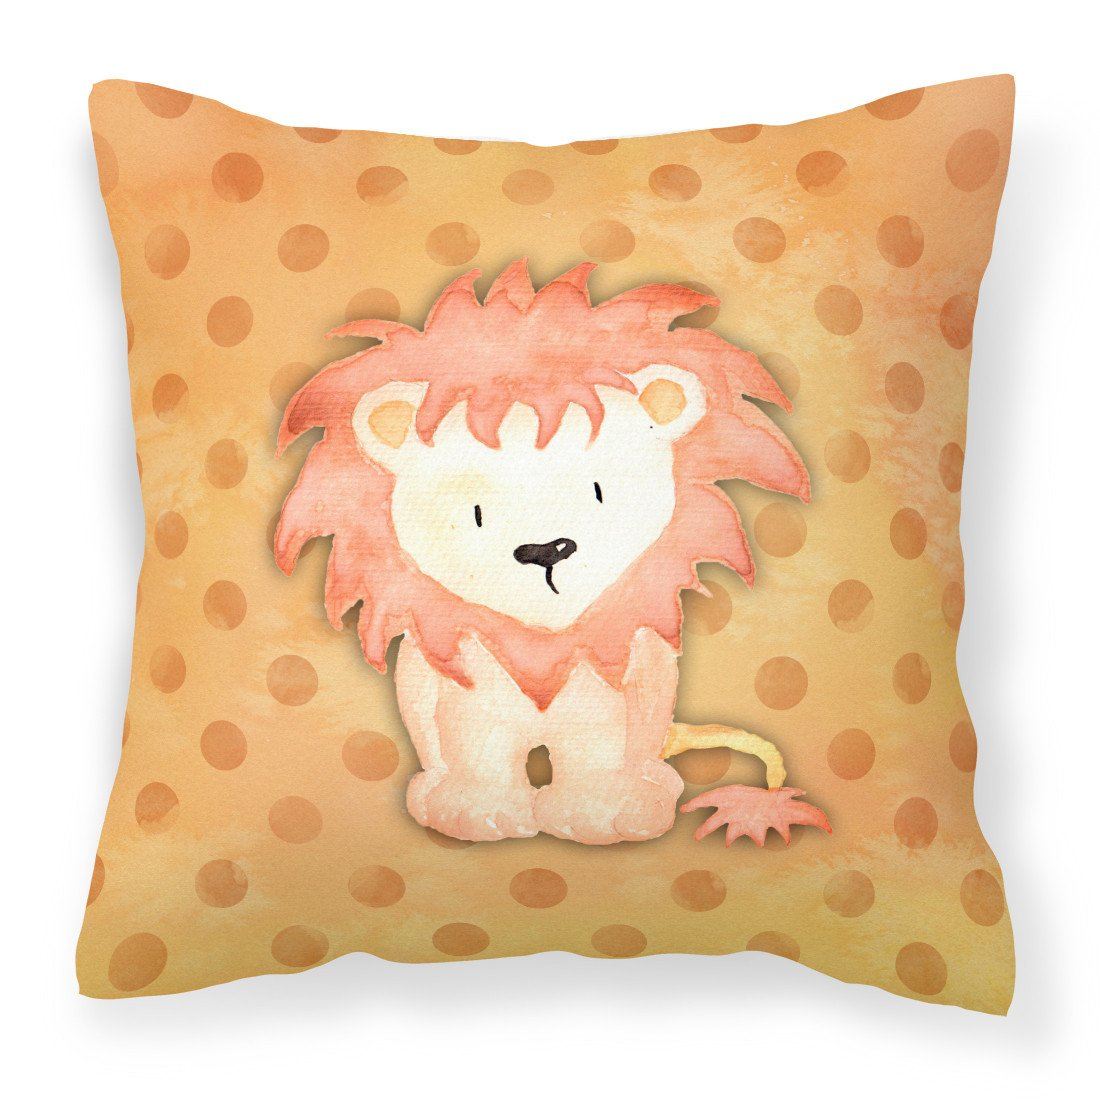 Polkadot Lion Watercolor Fabric Decorative Pillow BB7374PW1818 by Caroline's Treasures